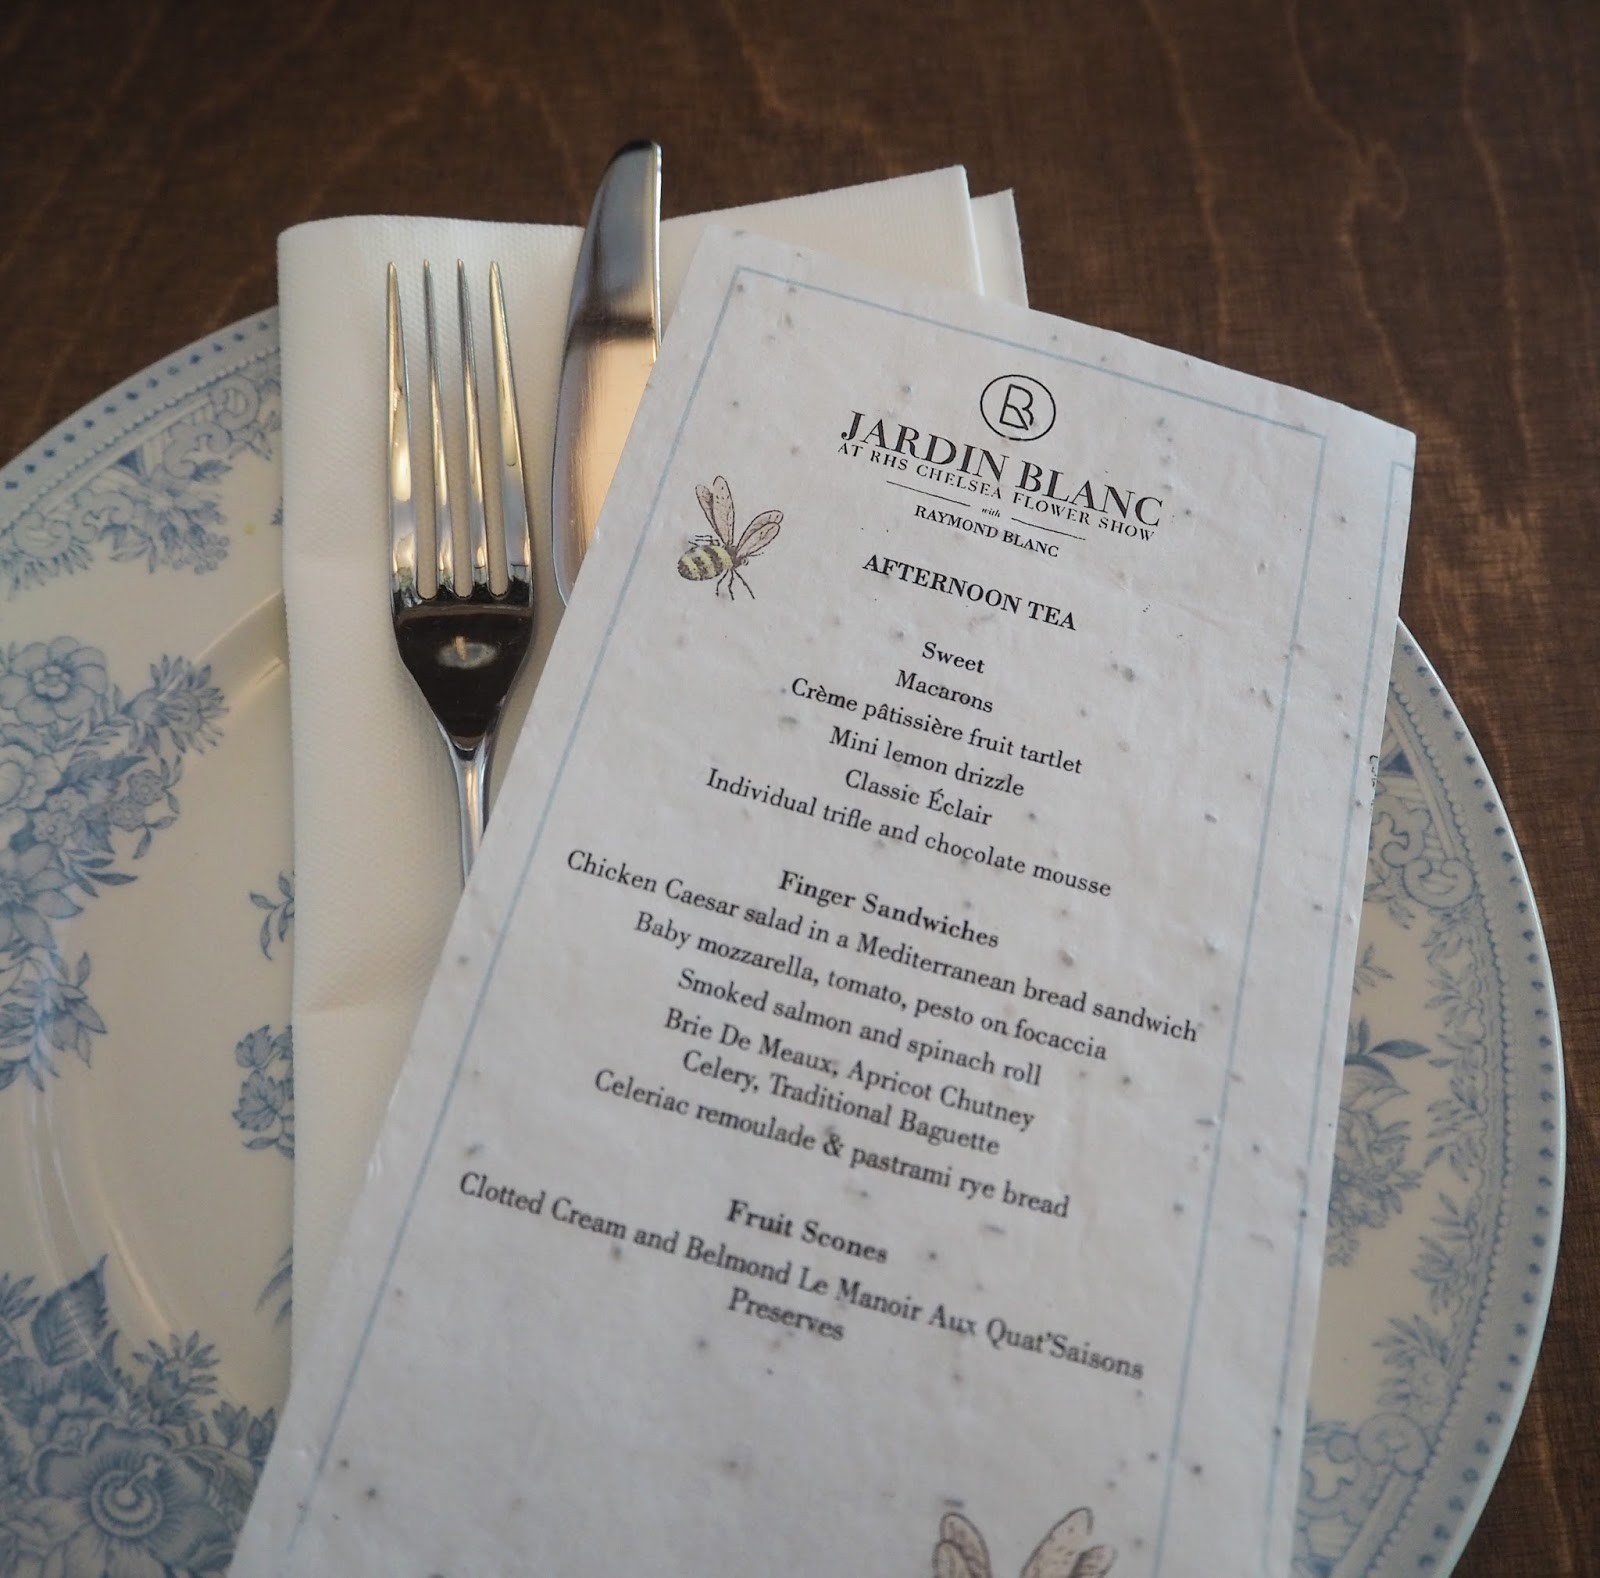 Afternoon tea menu, Jardin Blanc, Chelsea Flower Show 2017